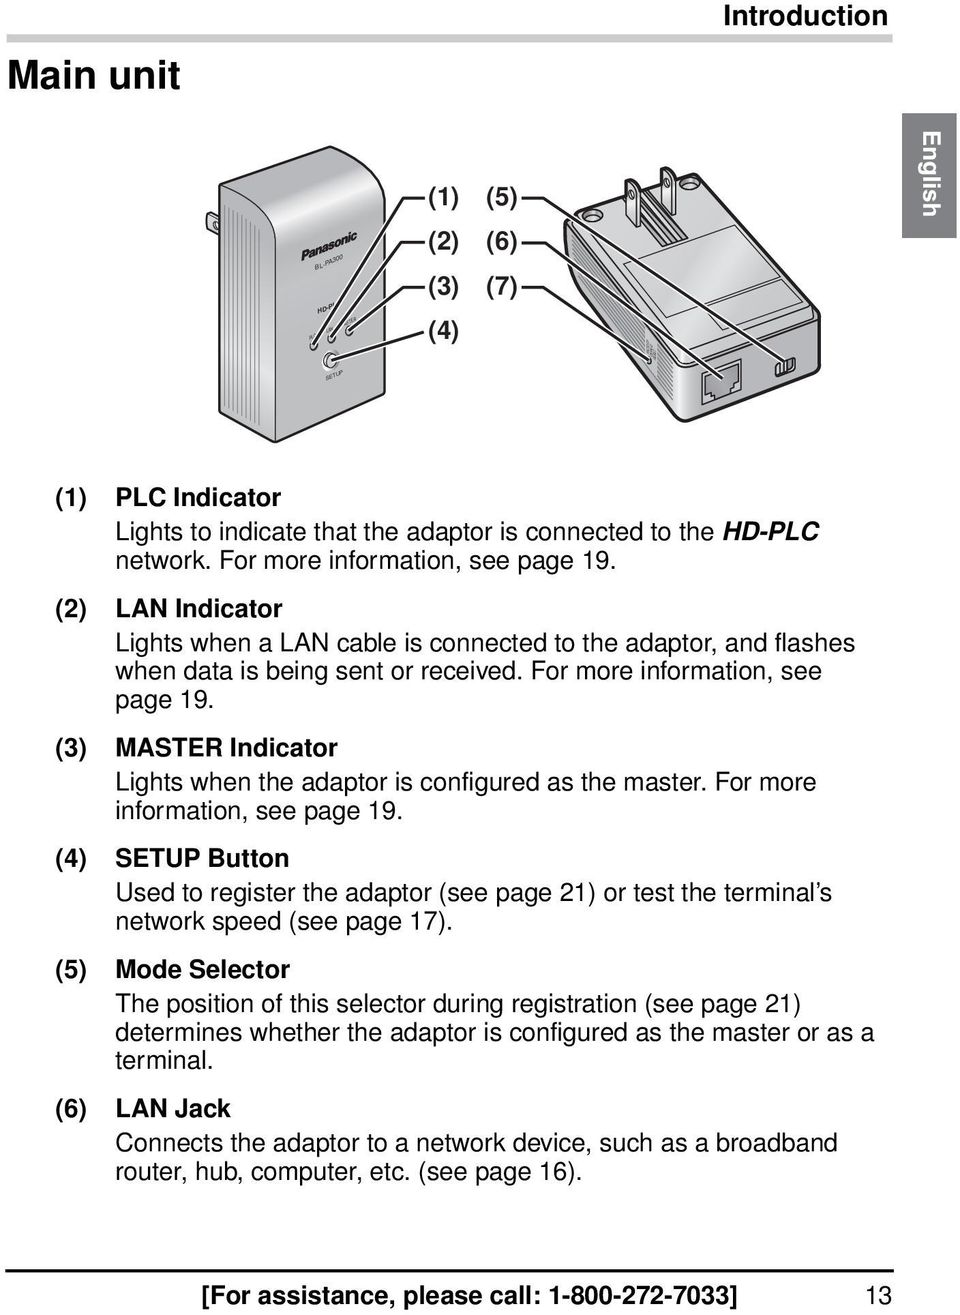 (3) MASTER Indicator Lights when the adaptor is configured as the master. For more information, see page 19.